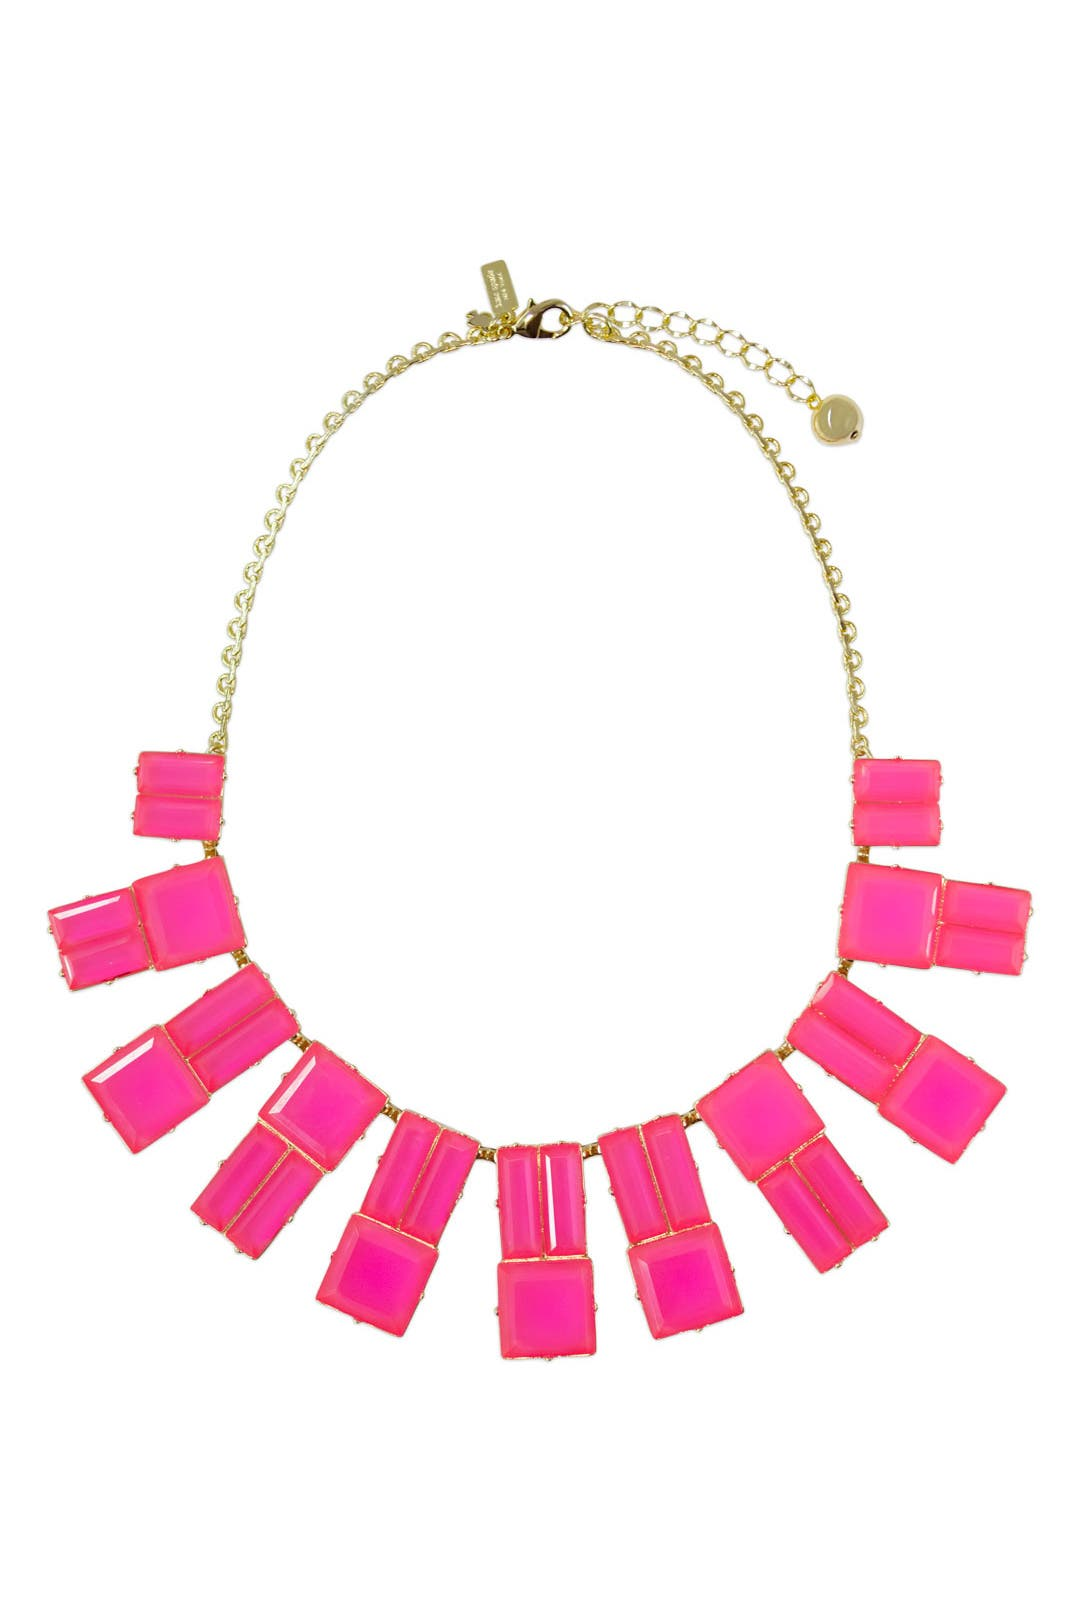 Necklaces kate spade new york accessories Great selection and